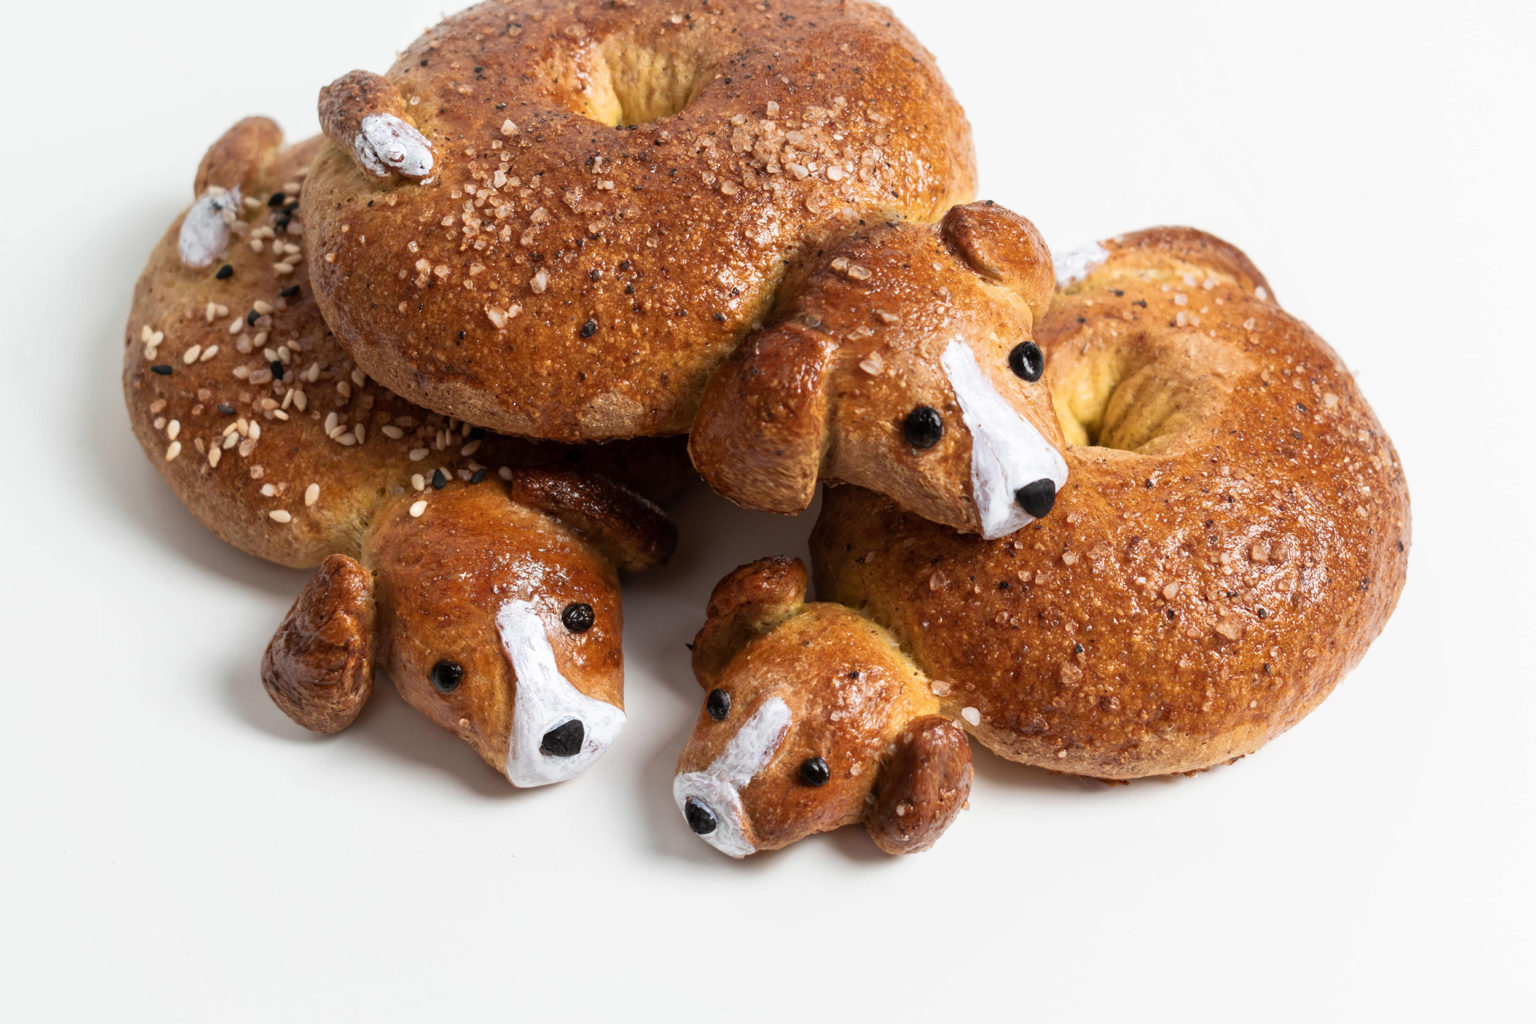 Three beagle bagels on top of each other